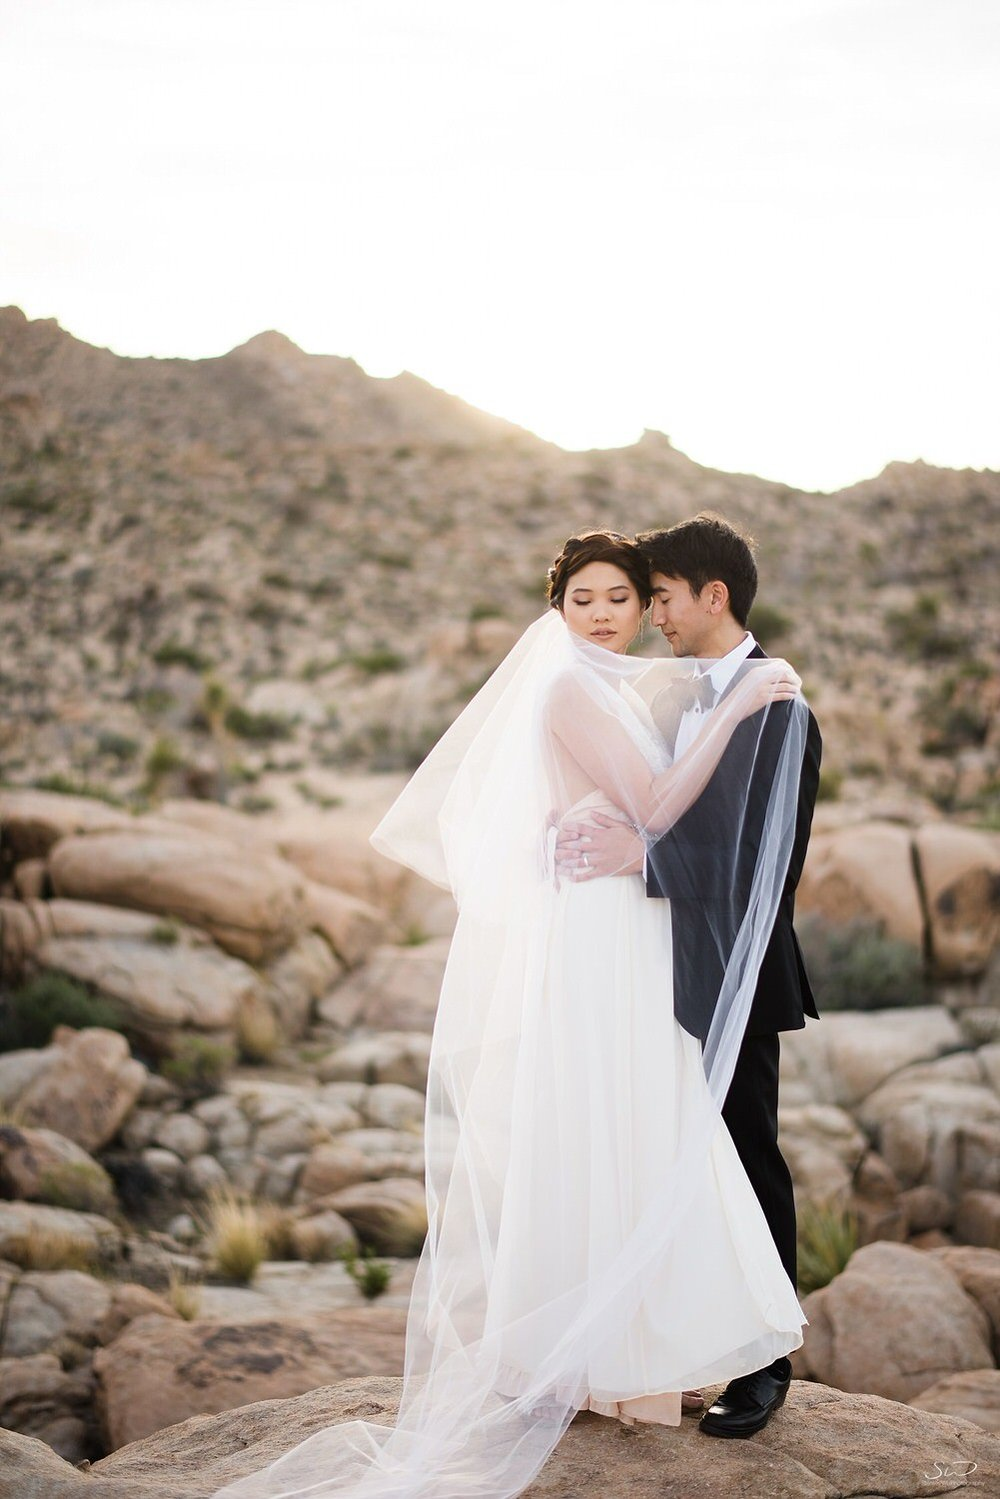 Couple hugging in desert | Joshua Tree Desert Wedding, Engagement, Elopement, Adventure Inspiration